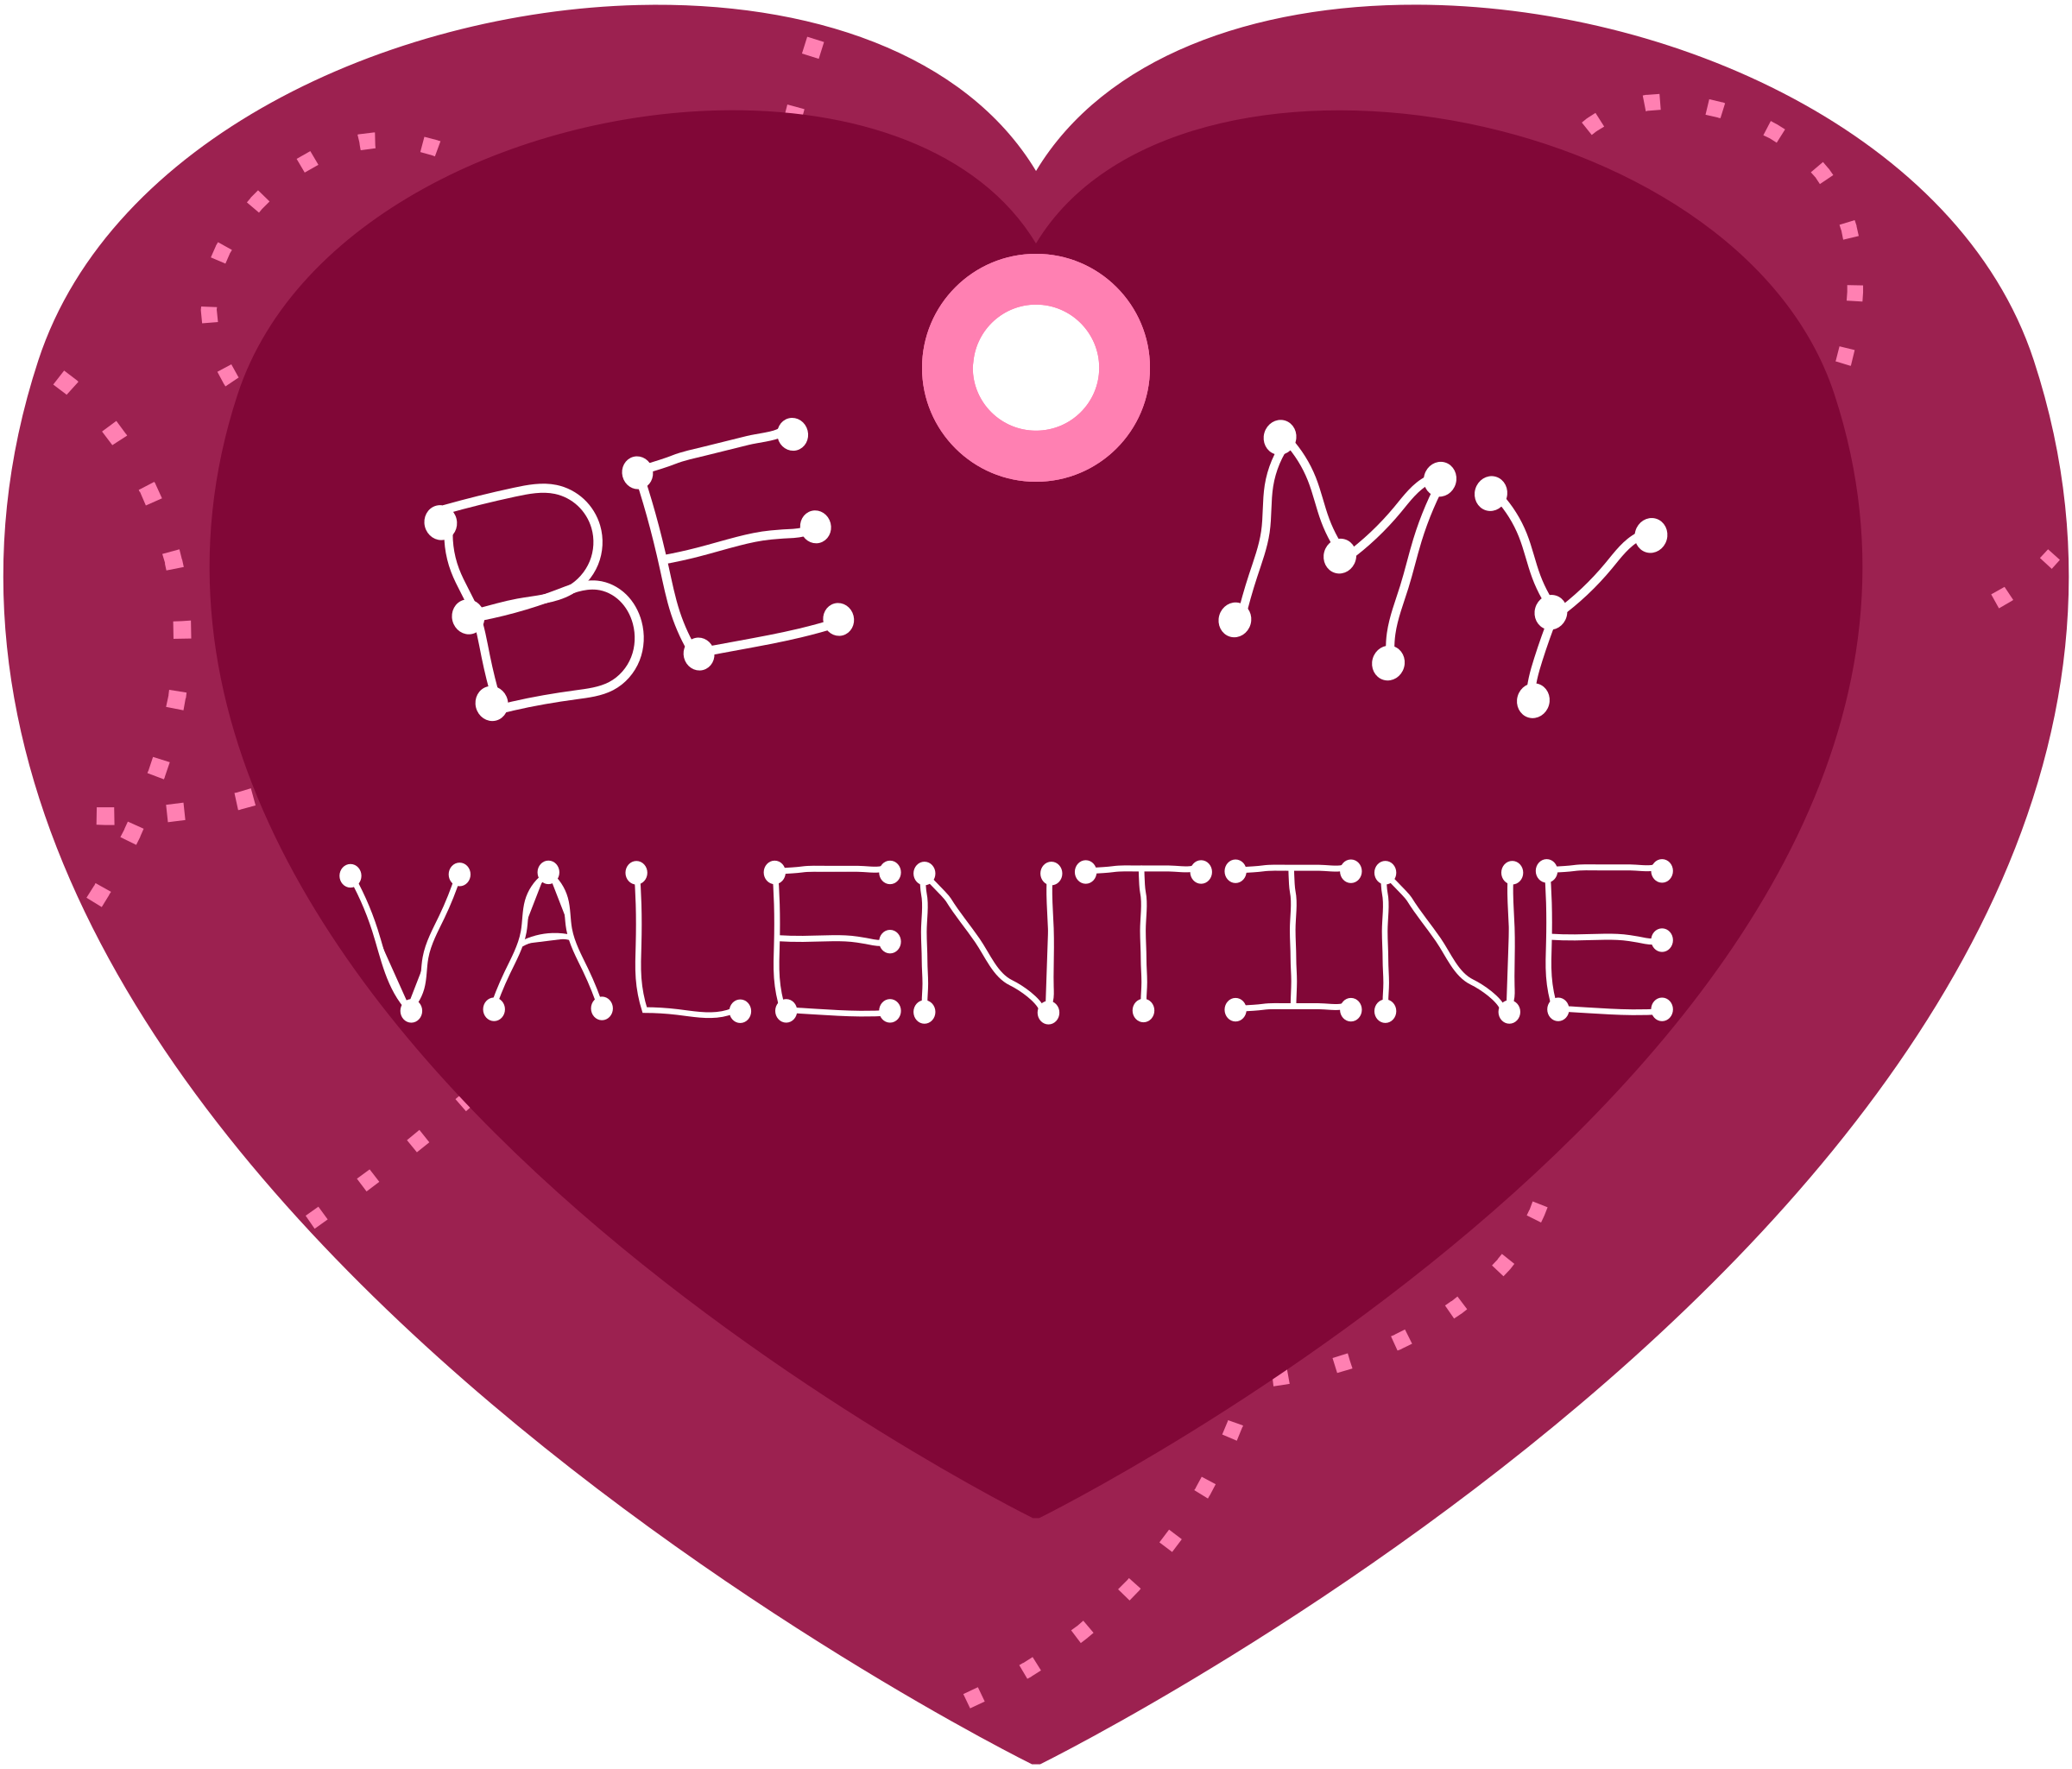 Gift heart clipart clipart free Clipart - Be My Valentine Heart Shaped Gift Tag clipart free